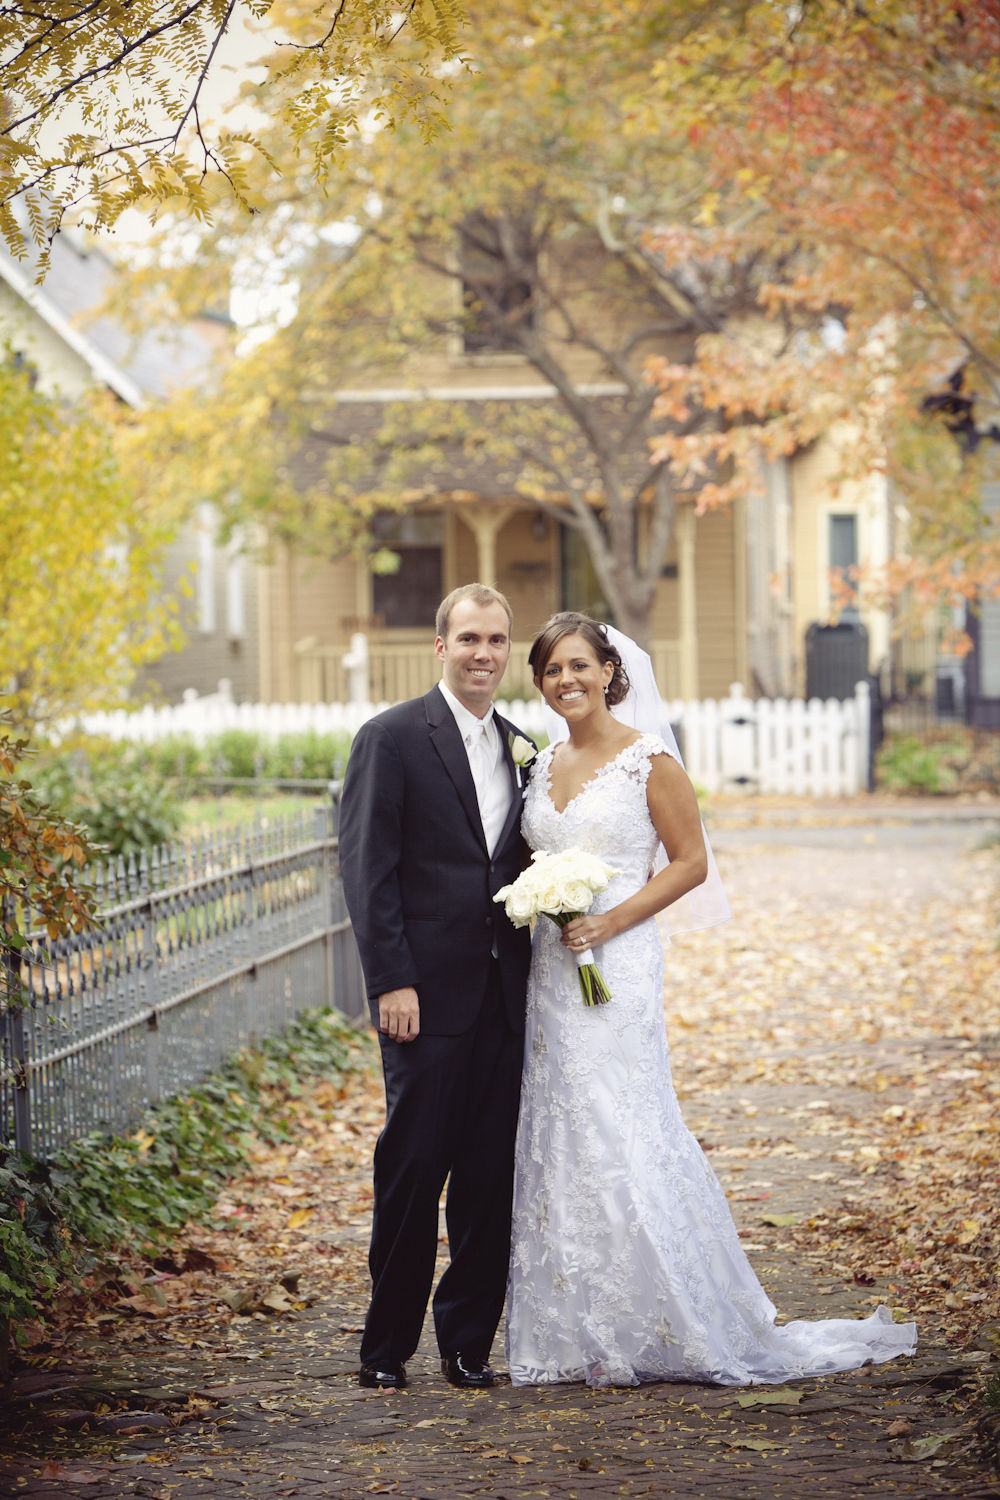 Indianapolis-Indiana-Wedding-Photographer-Crowes-Eye-Photography-Lockerbie-Square-Bride-and-Groom.jpg